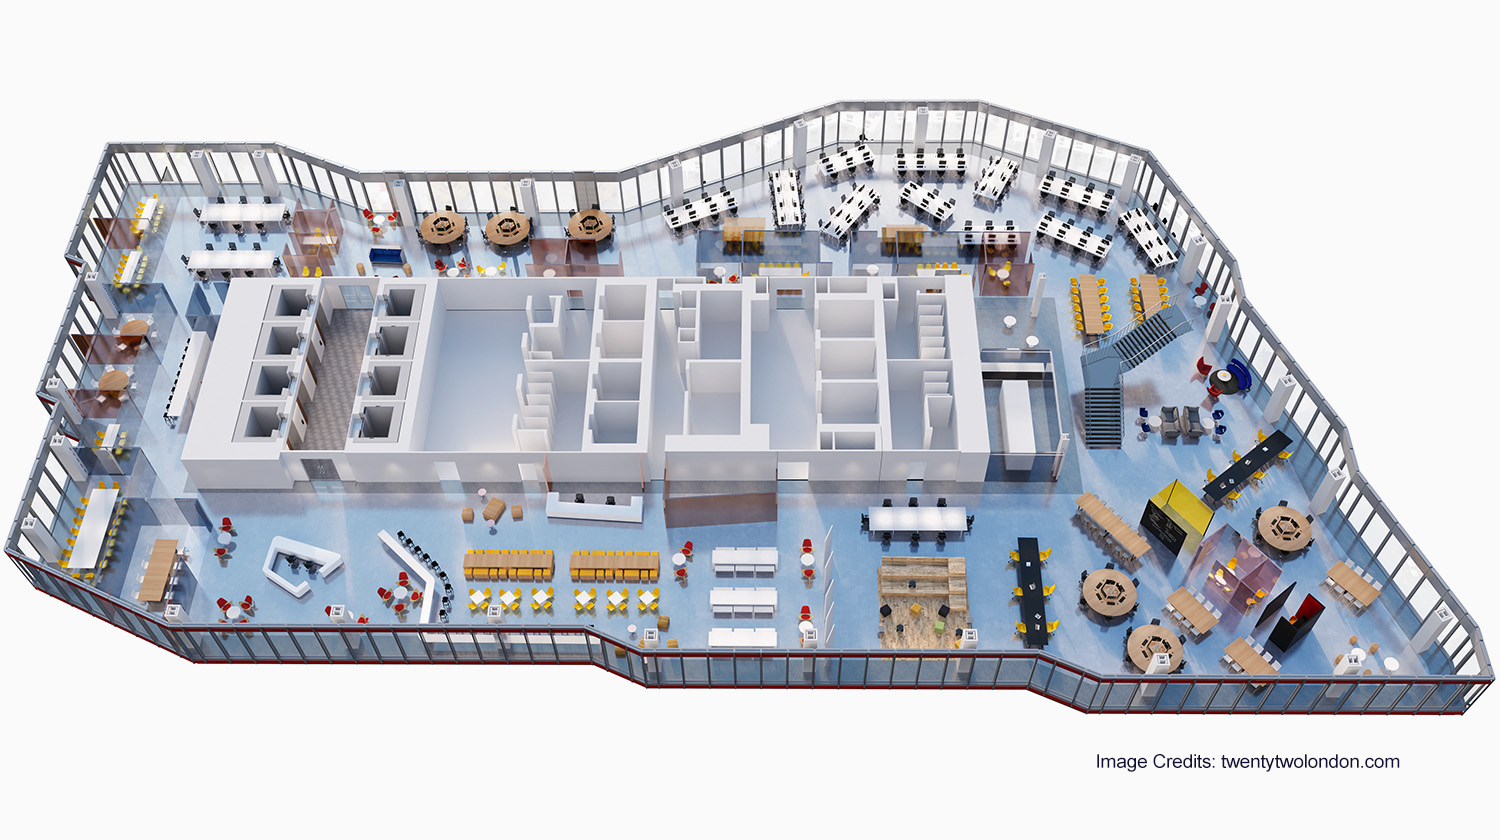 abw workplace 3D plan